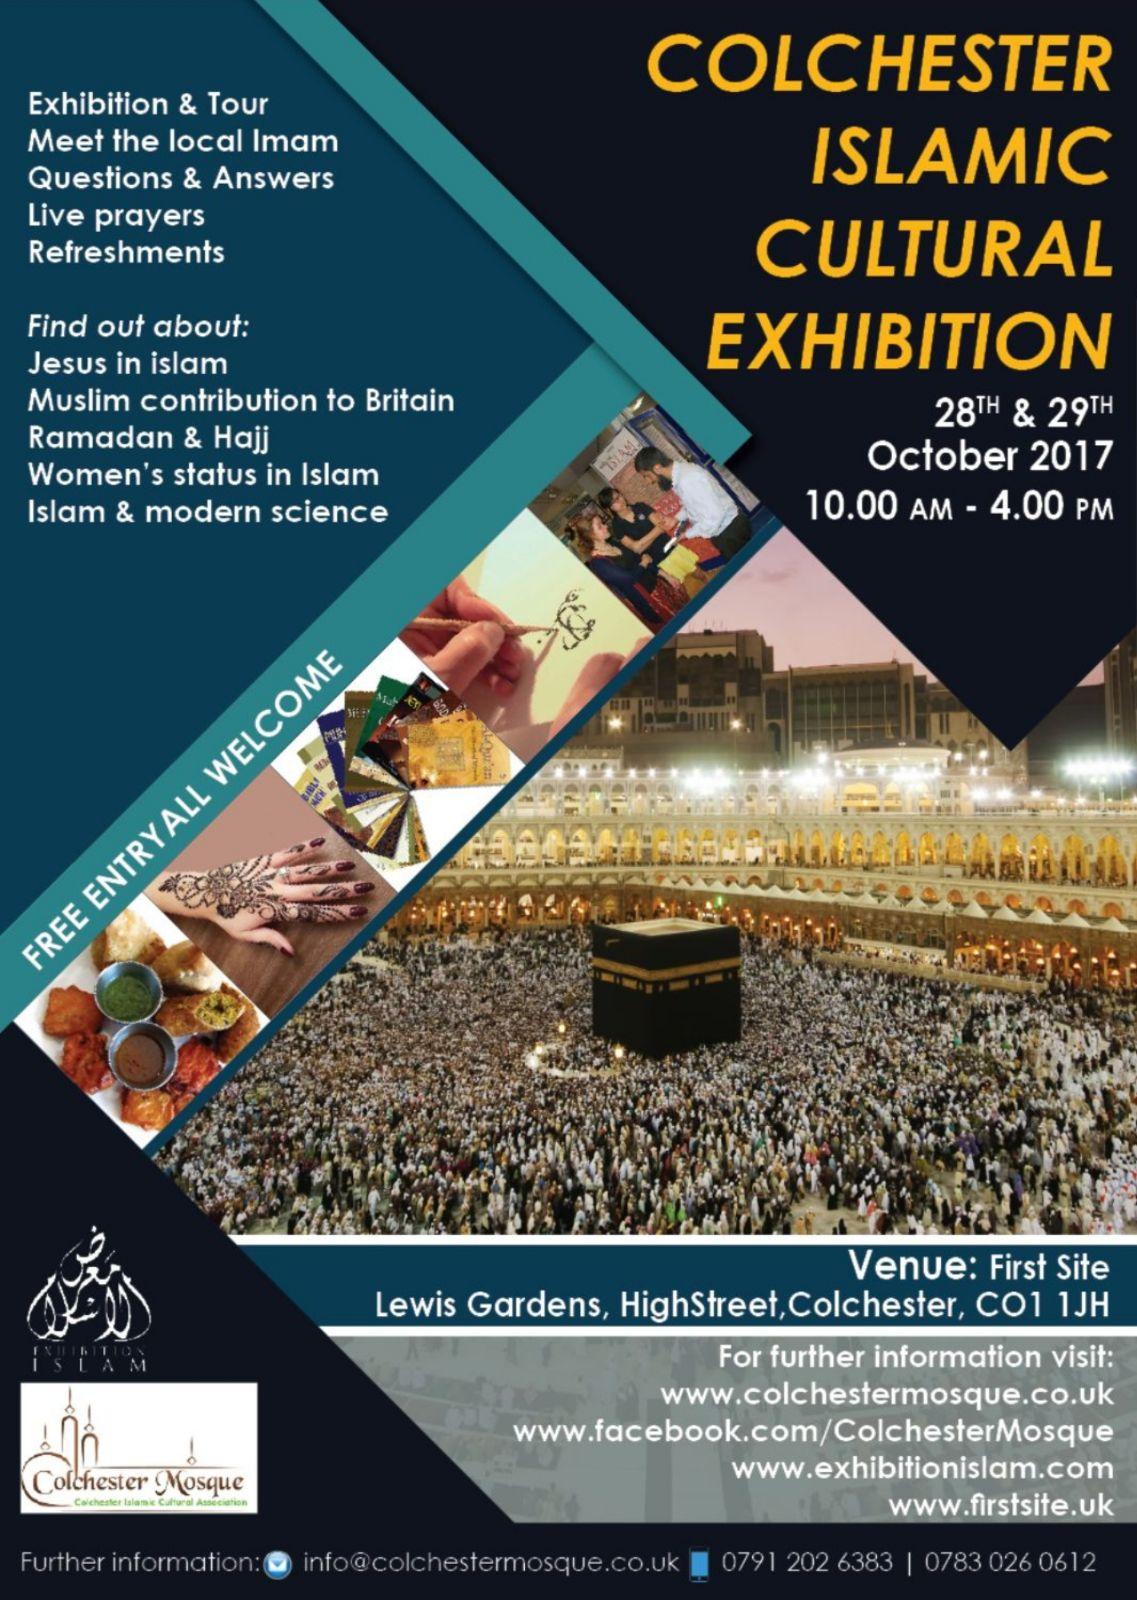 Colchester Islamic Cultural Exhibition